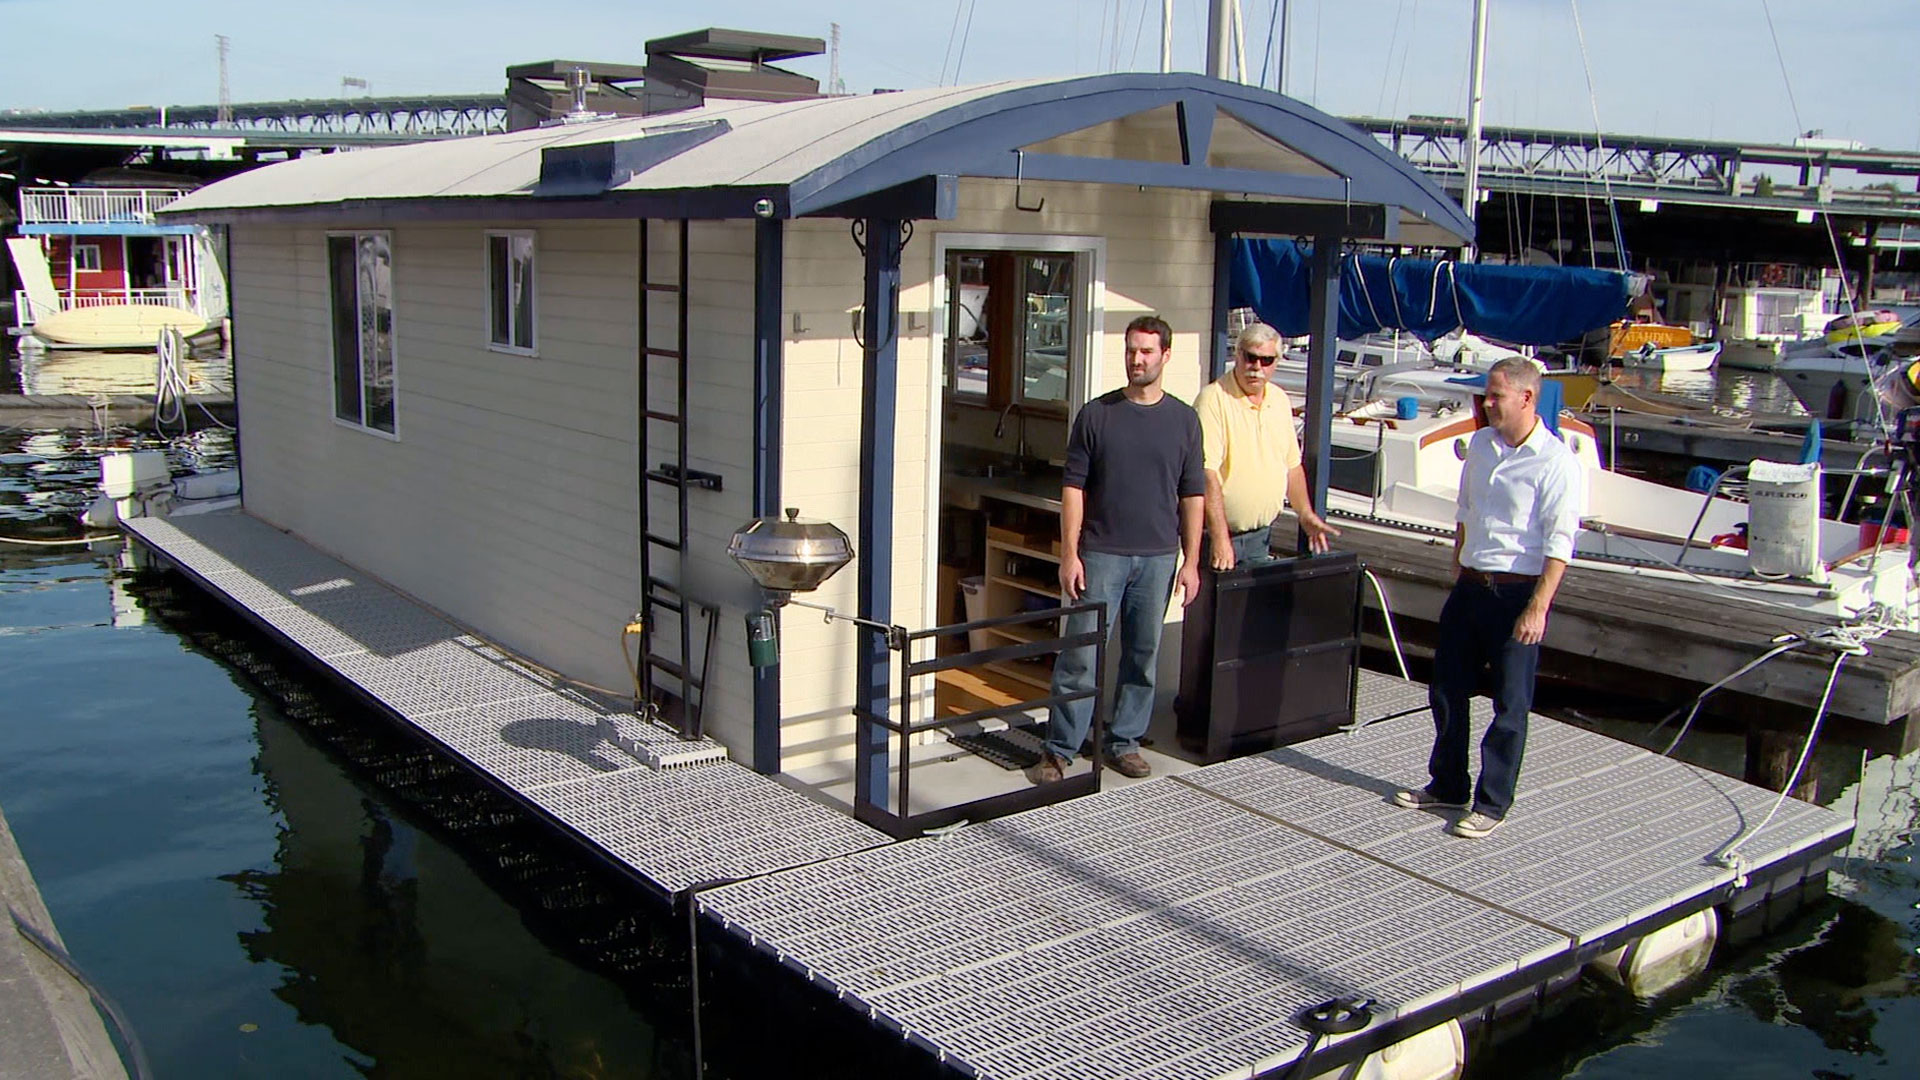 A Tiny House Boat in Seattle